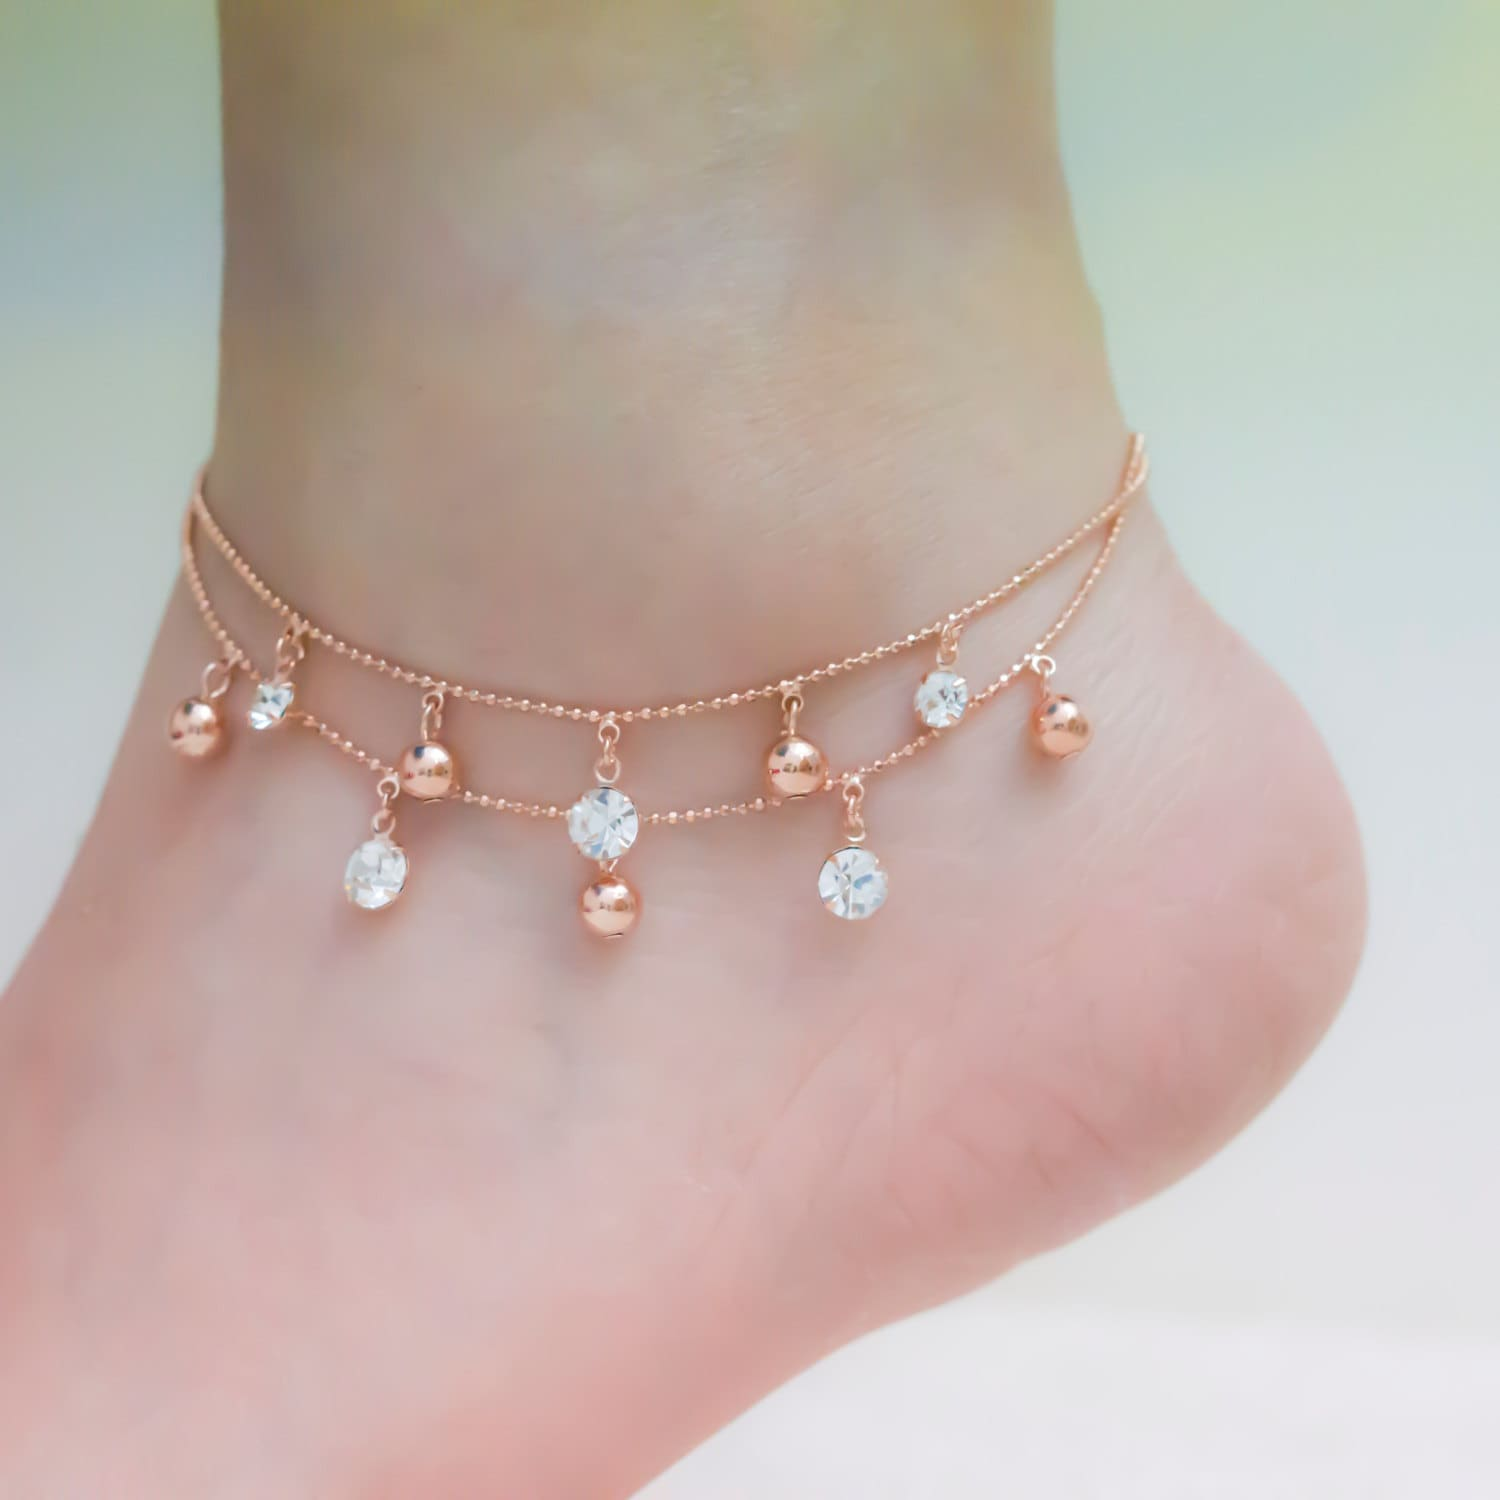 adi shani anklets plated anklet gold handmade ankle and jewelry bracelet charms with minimalist chain bracelets product